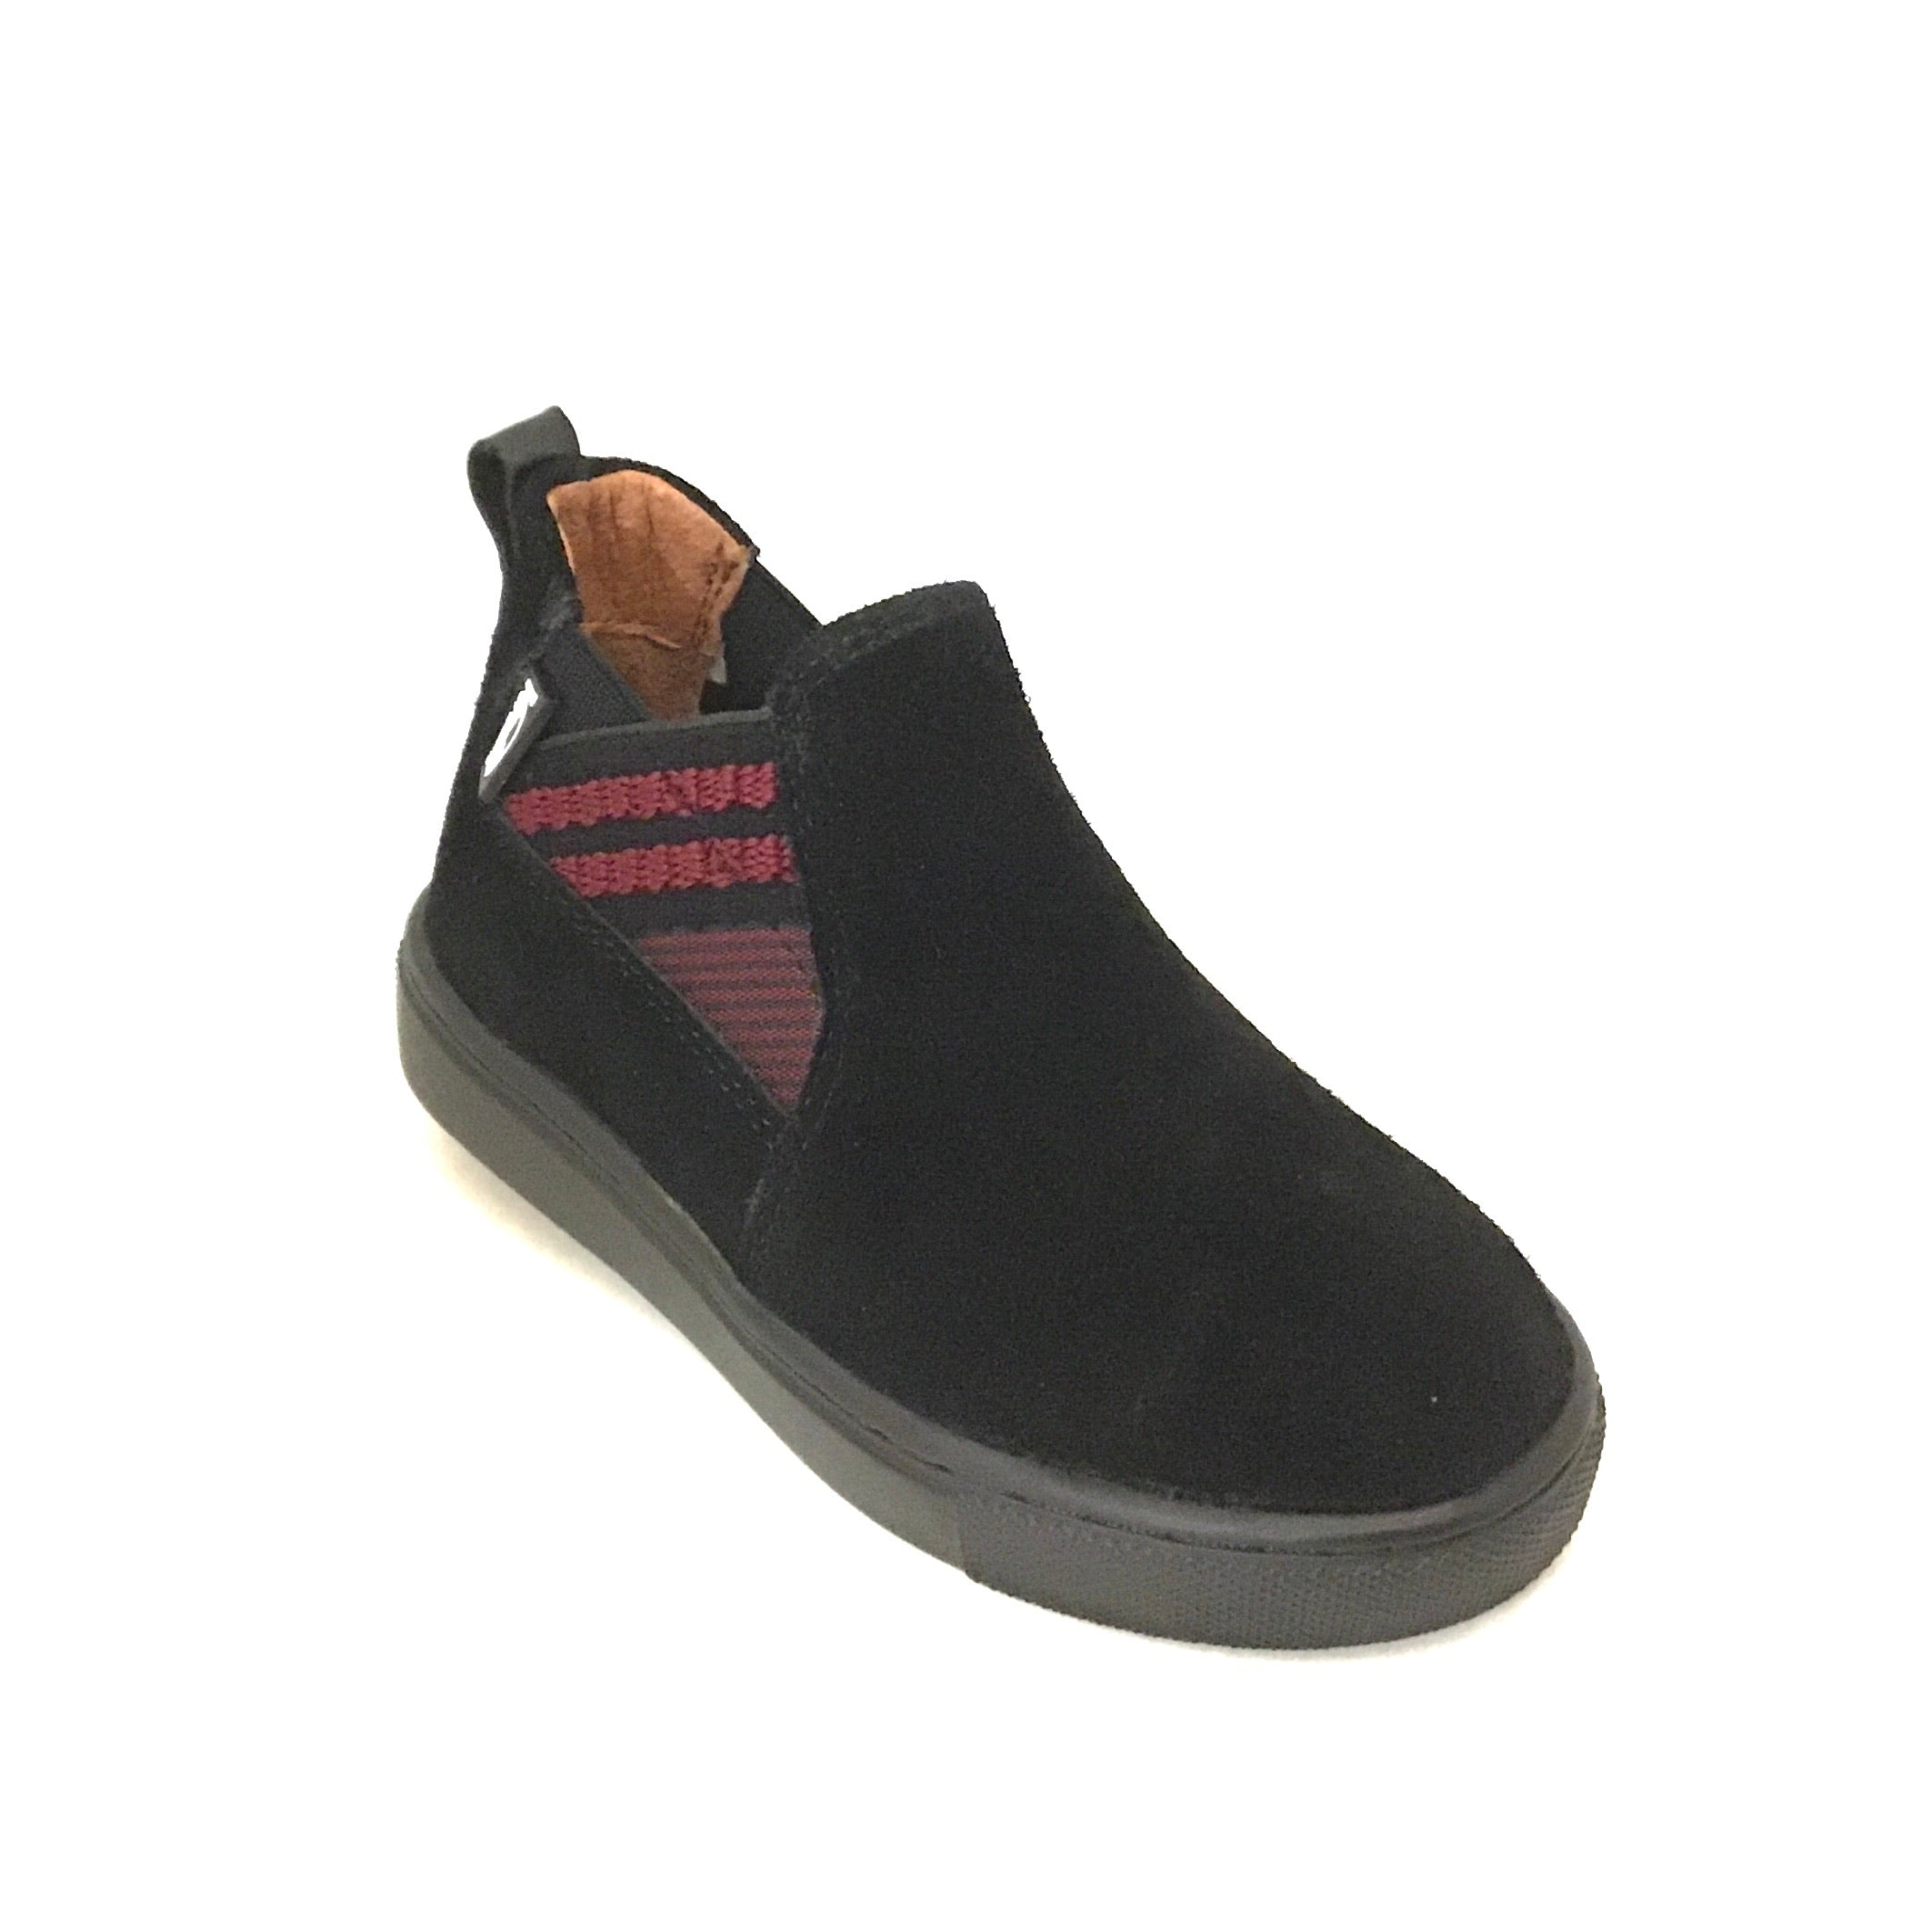 Venettini Black Suede Bootie with Bordeaux Stripes